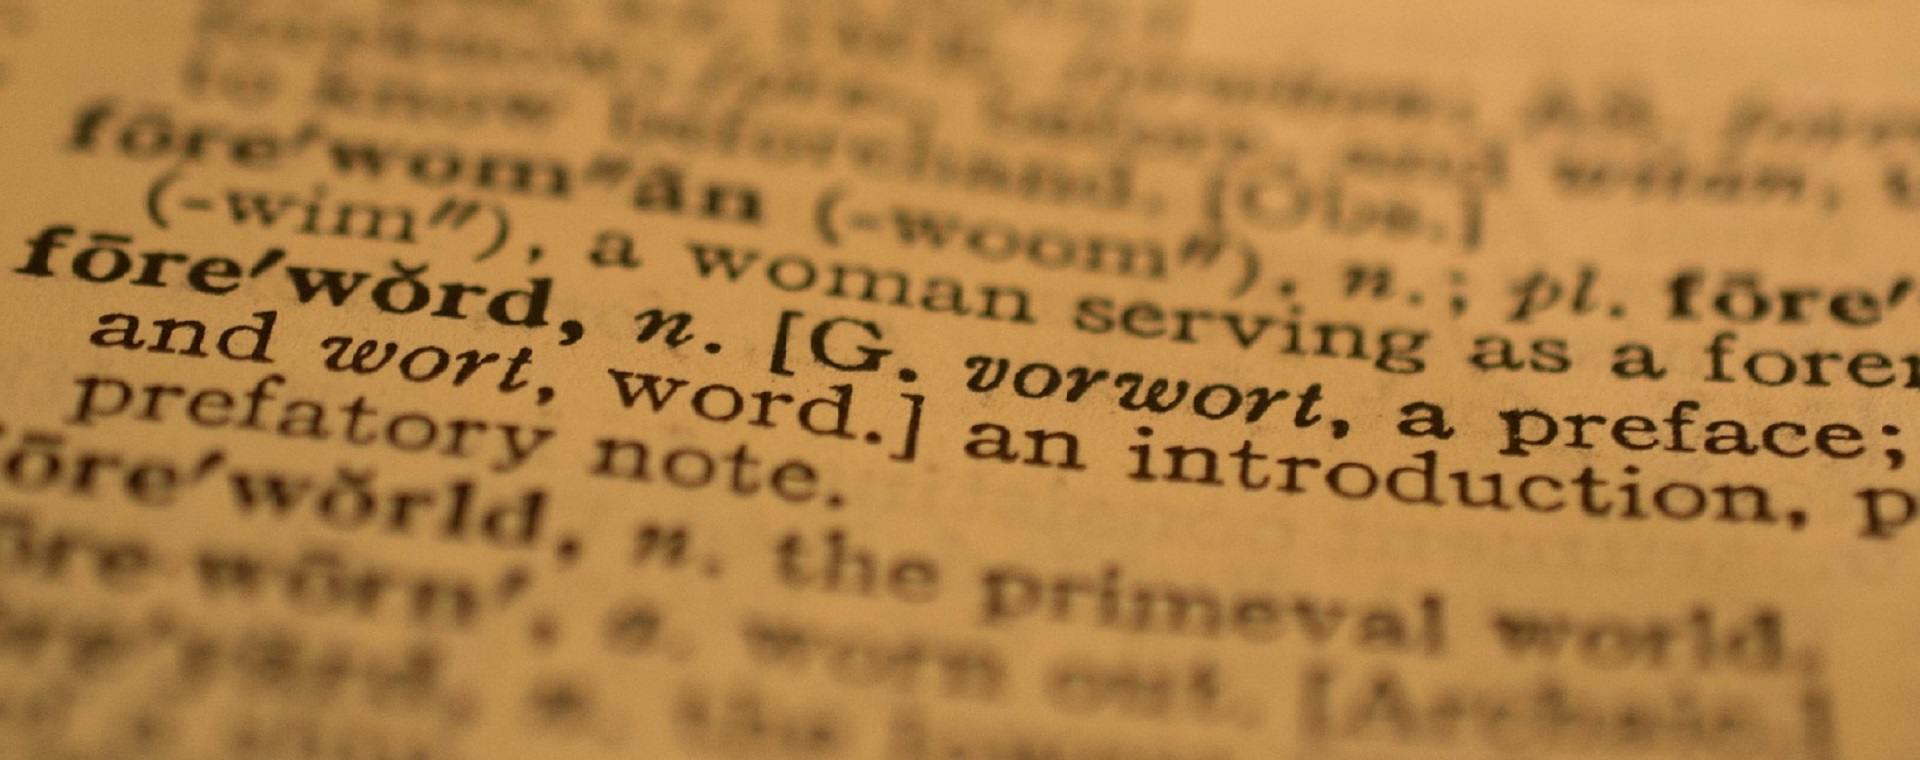 image of dictionary definition for the word